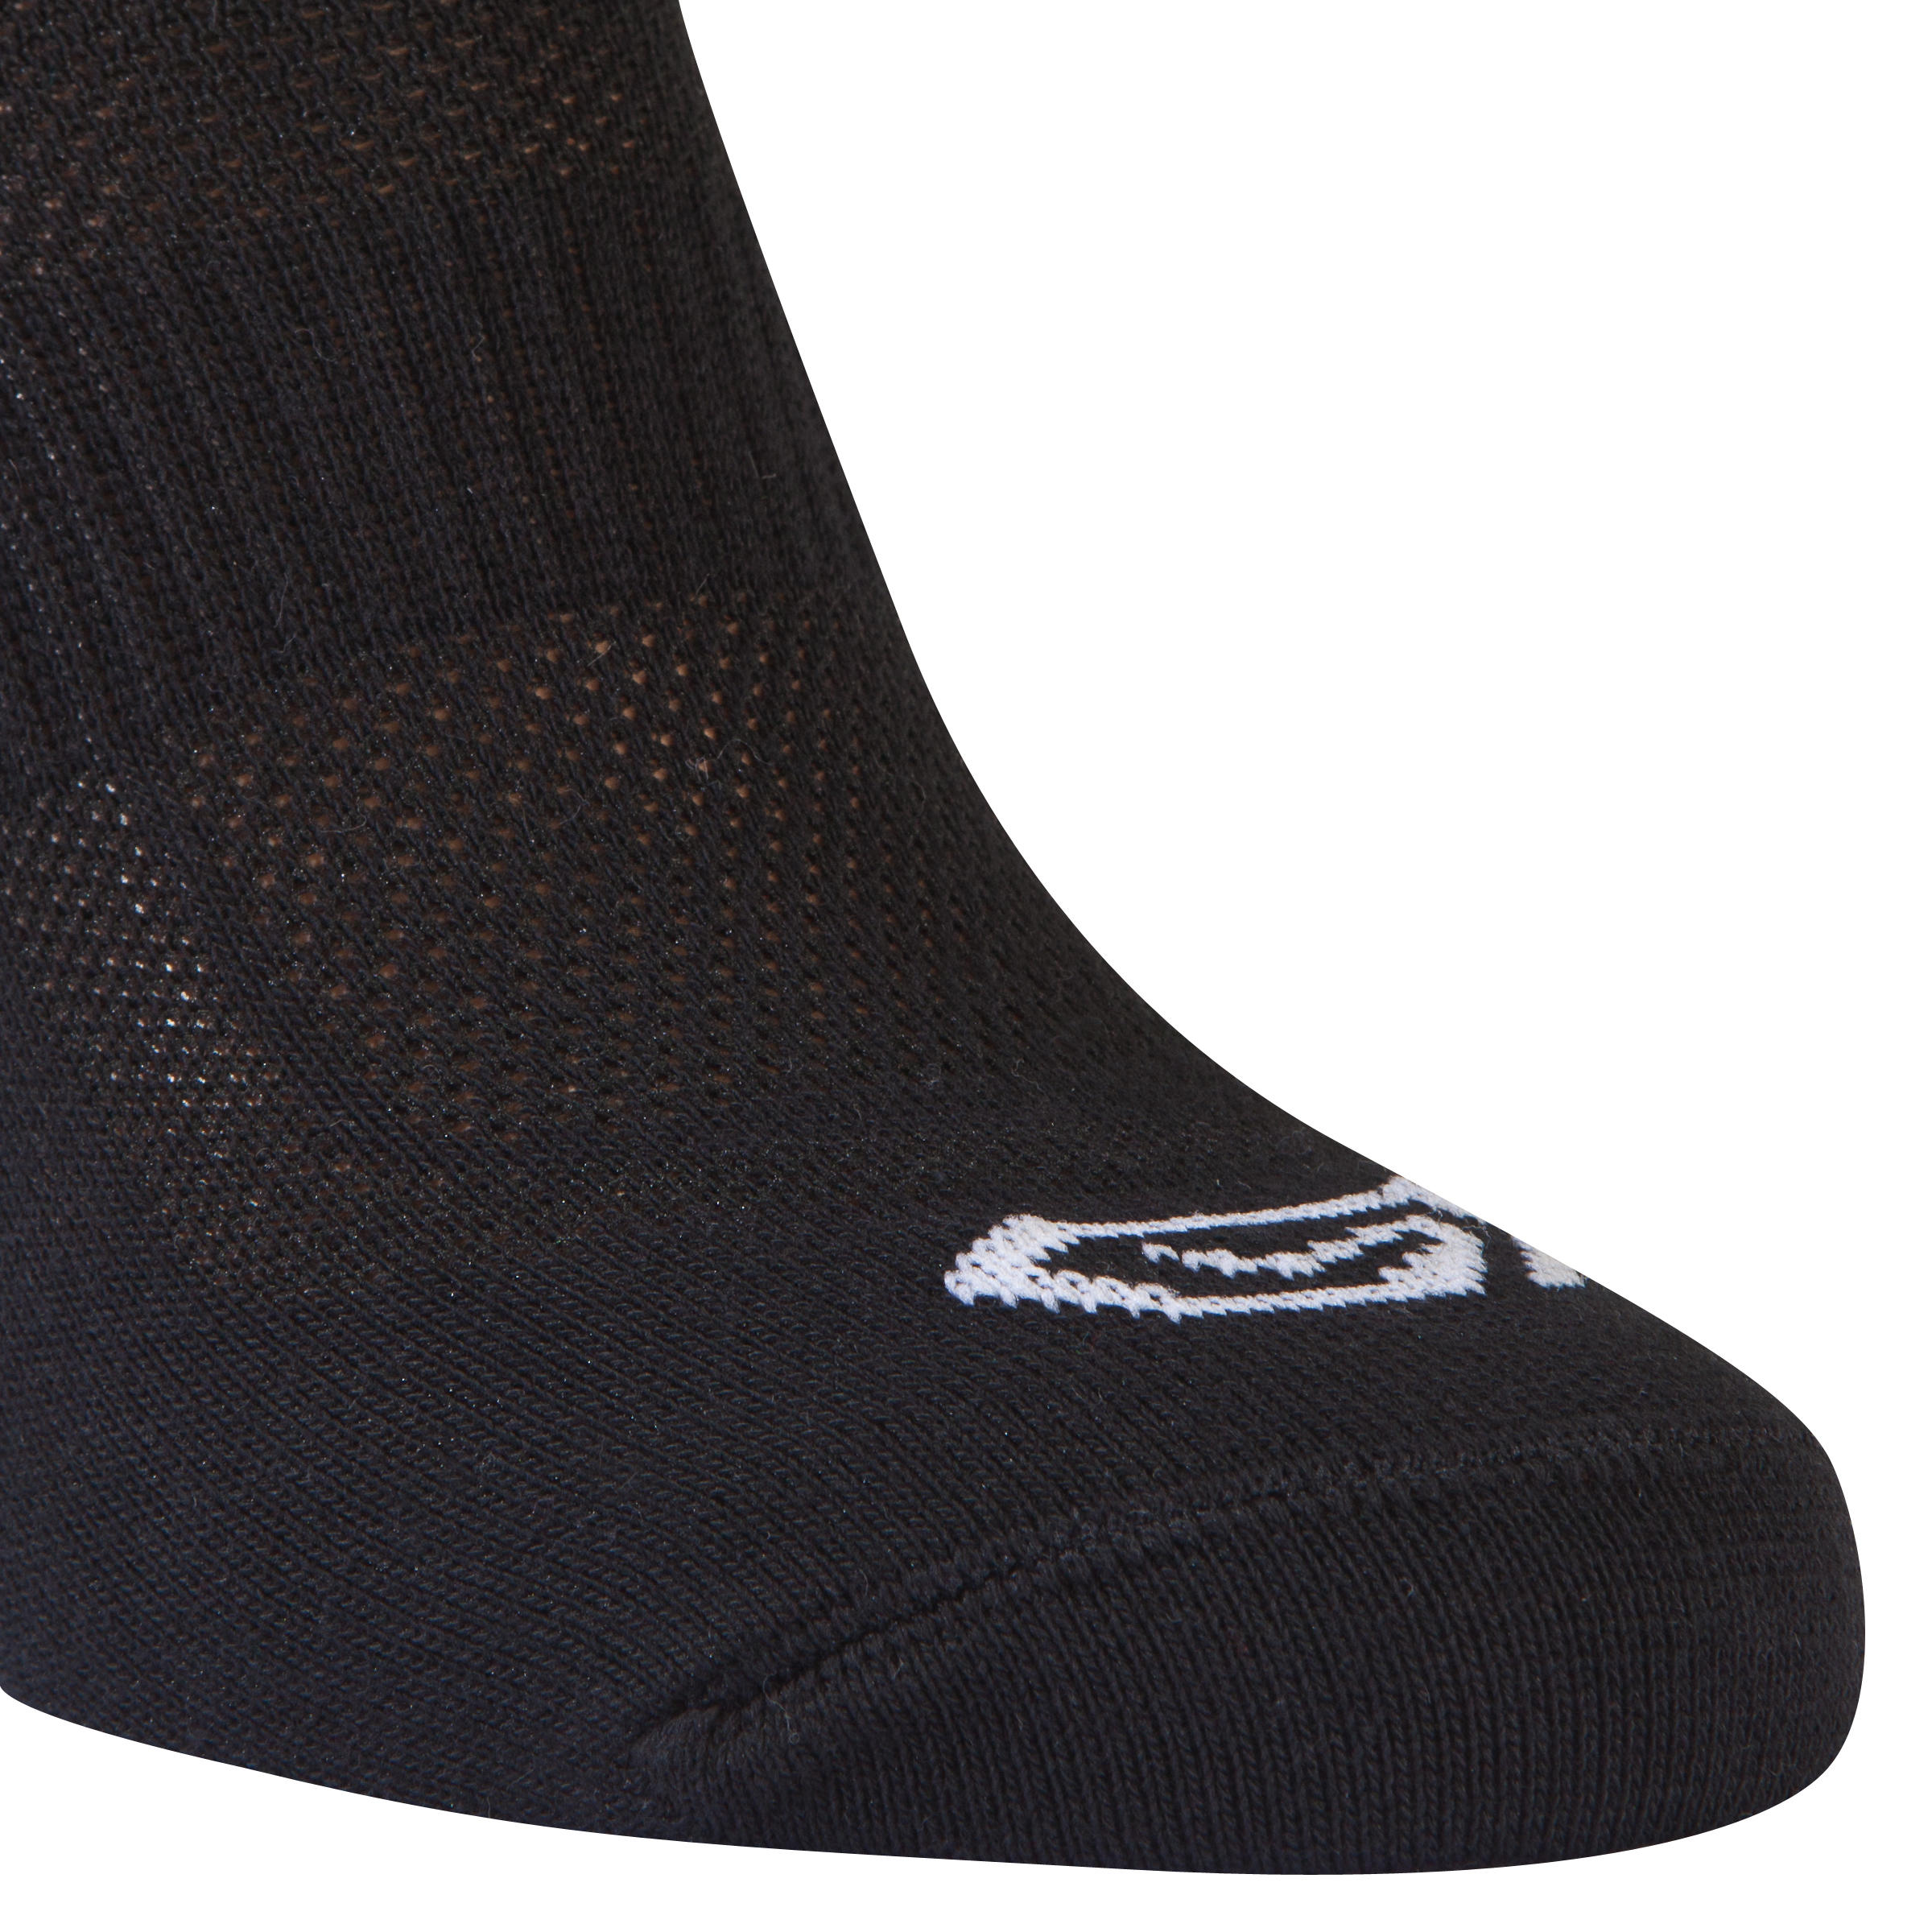 CHILDREN'S ATHLETICS SOCKS BLACK PACK OF 2